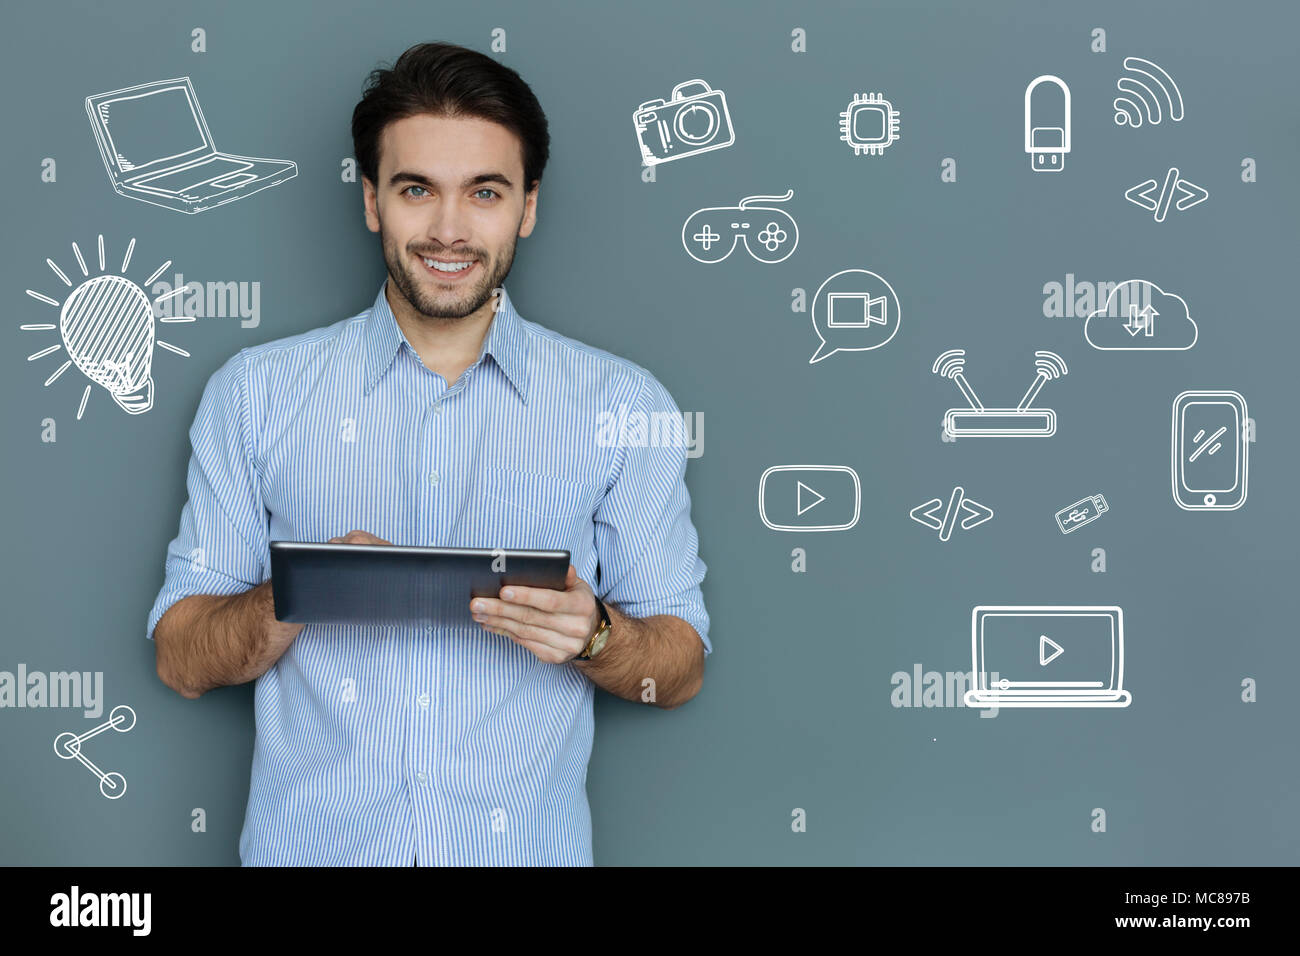 Experienced manager holding a modern tablet and smiling - Stock Image